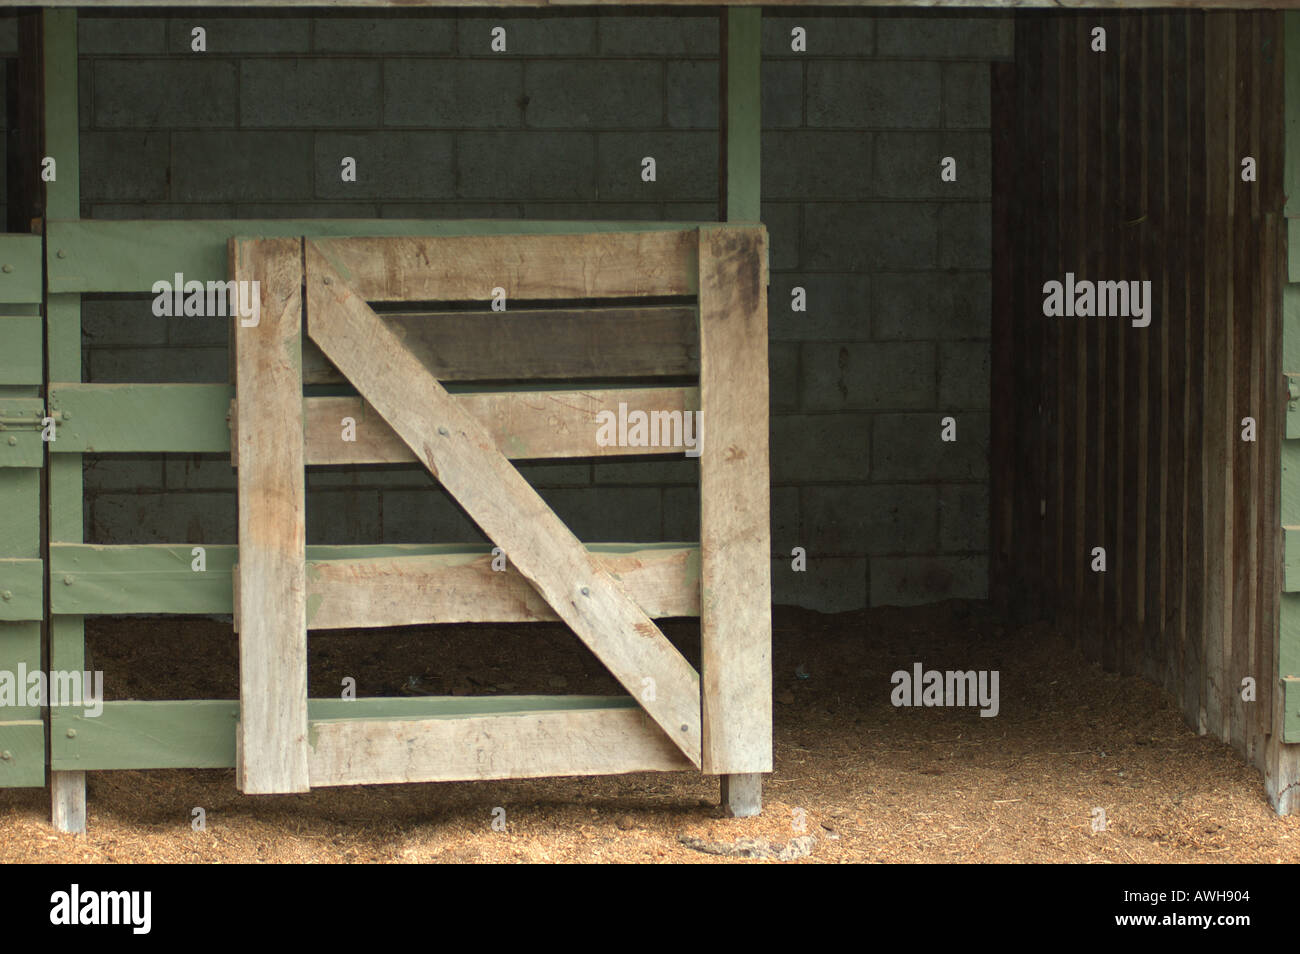 Shut The Gate After The Horse Has Bolted Empty Horse